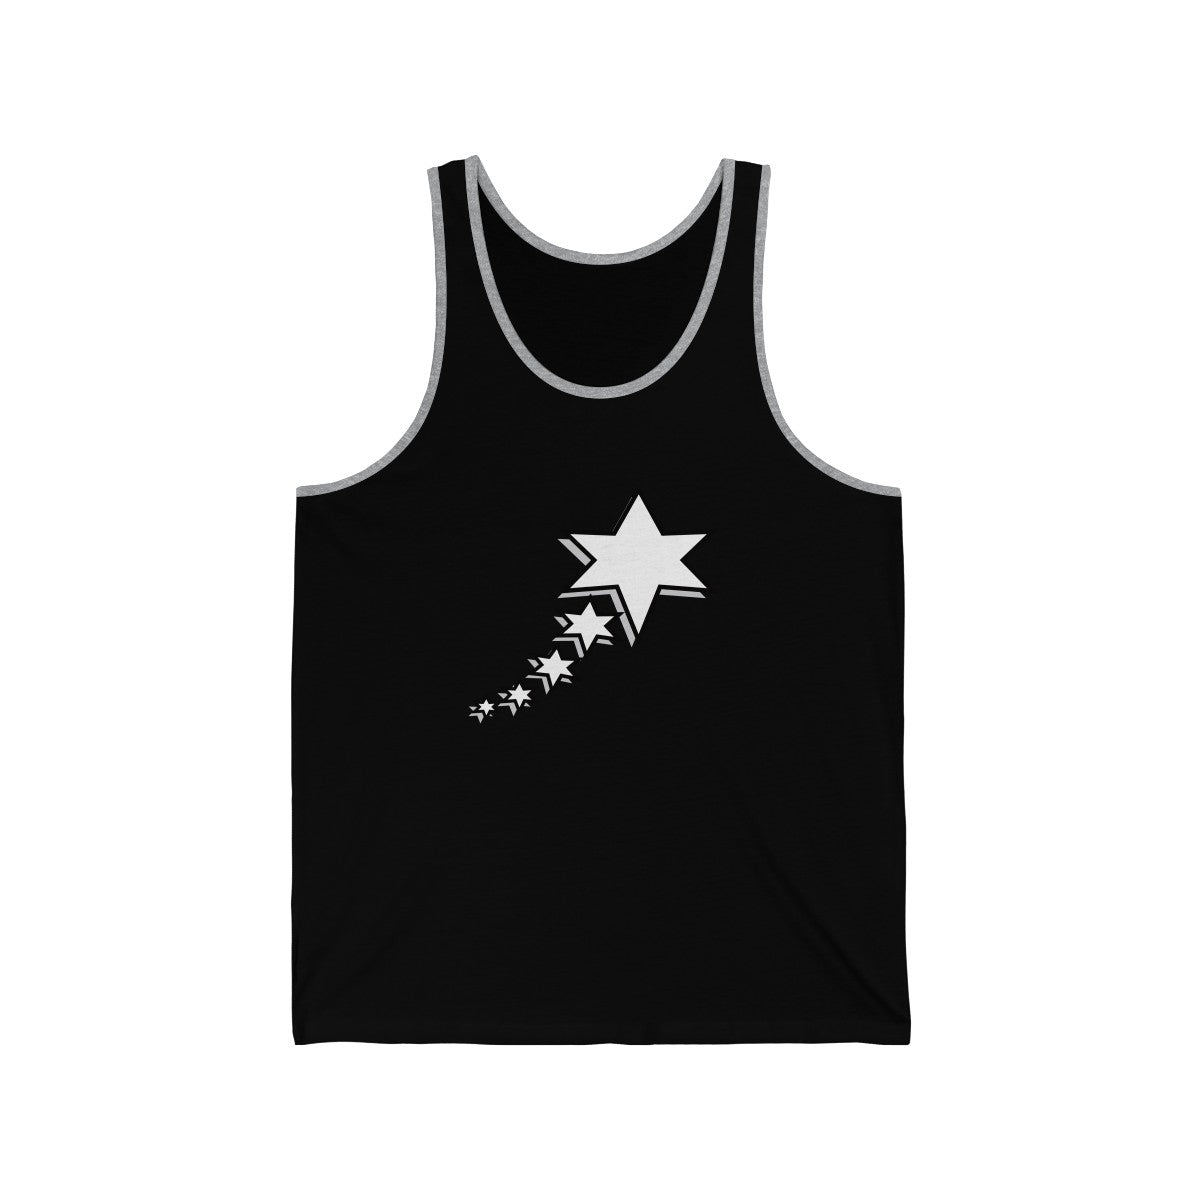 Unisex Jersey Tank - 6 Points 5 Stars (White)